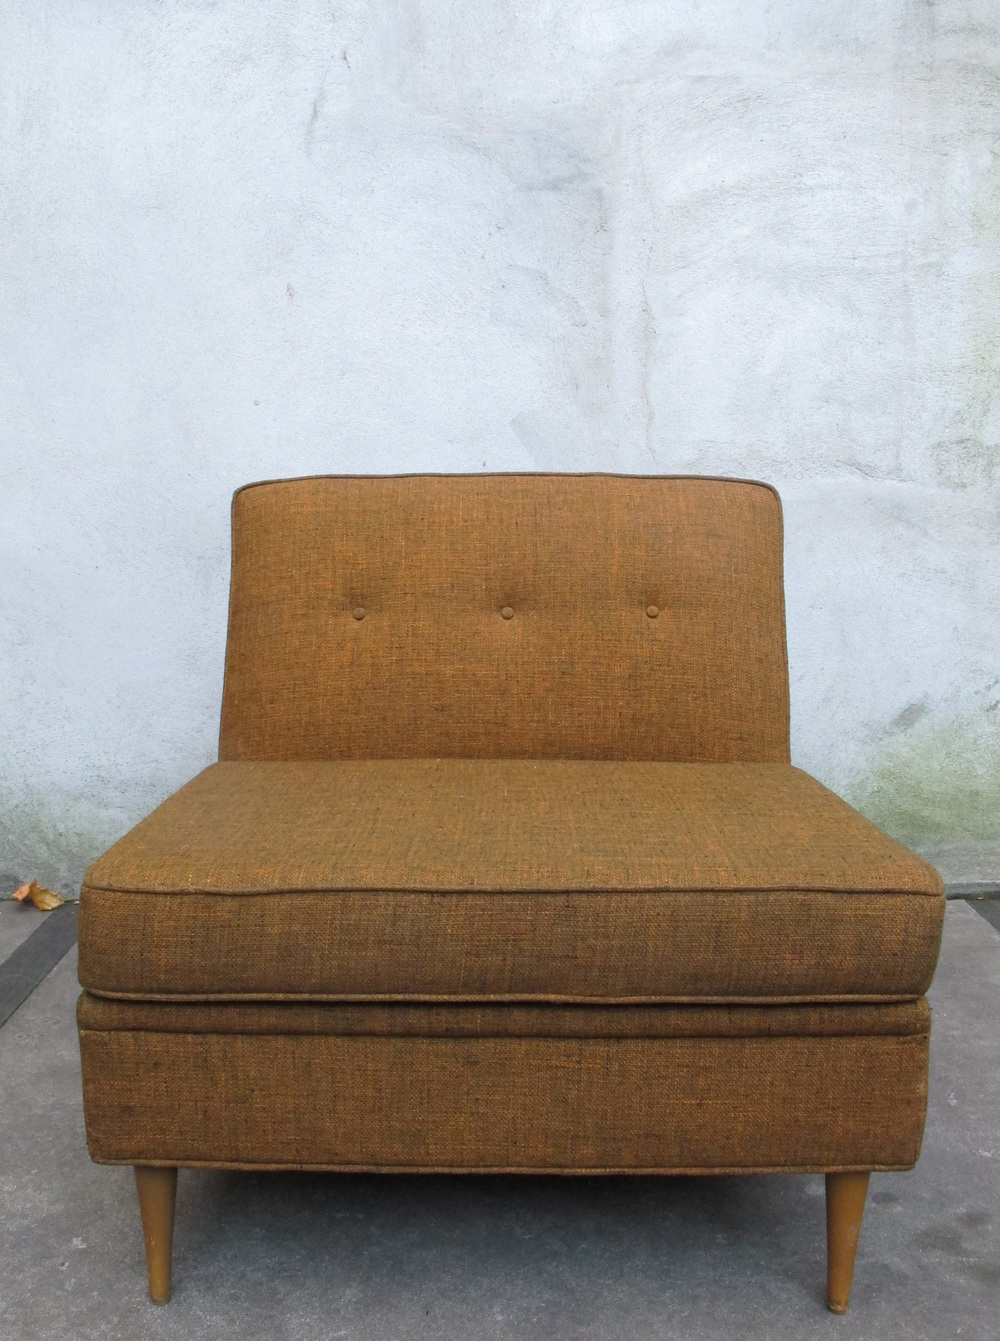 MID CENTURY MODERN LOUNGE CHAIR BY NORWALK FURNITURE